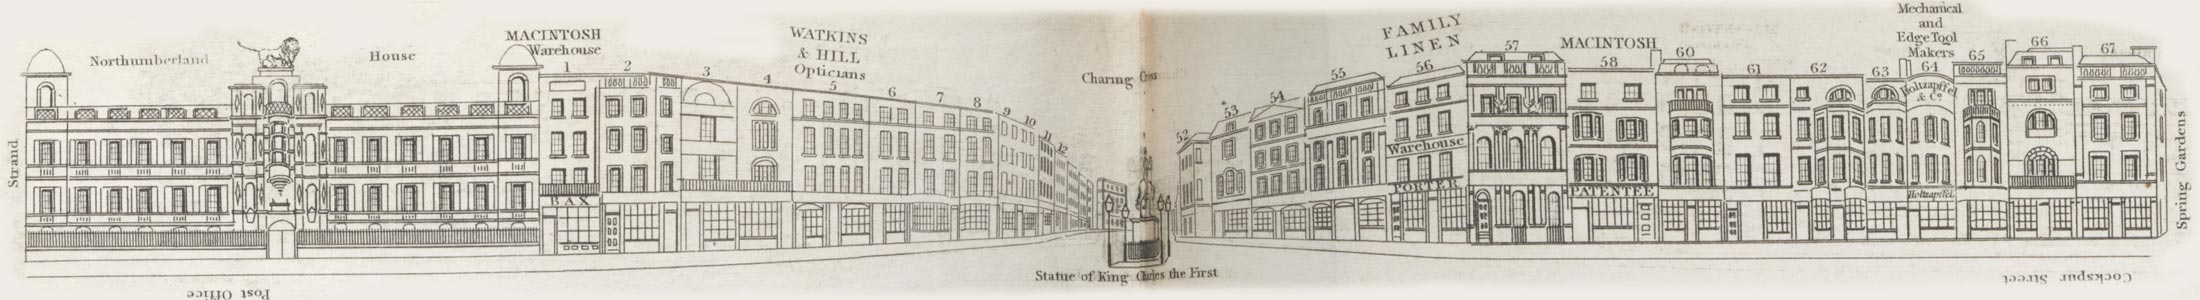 map - Tallis's London street views : No. 76. Trafalgar Square (south)